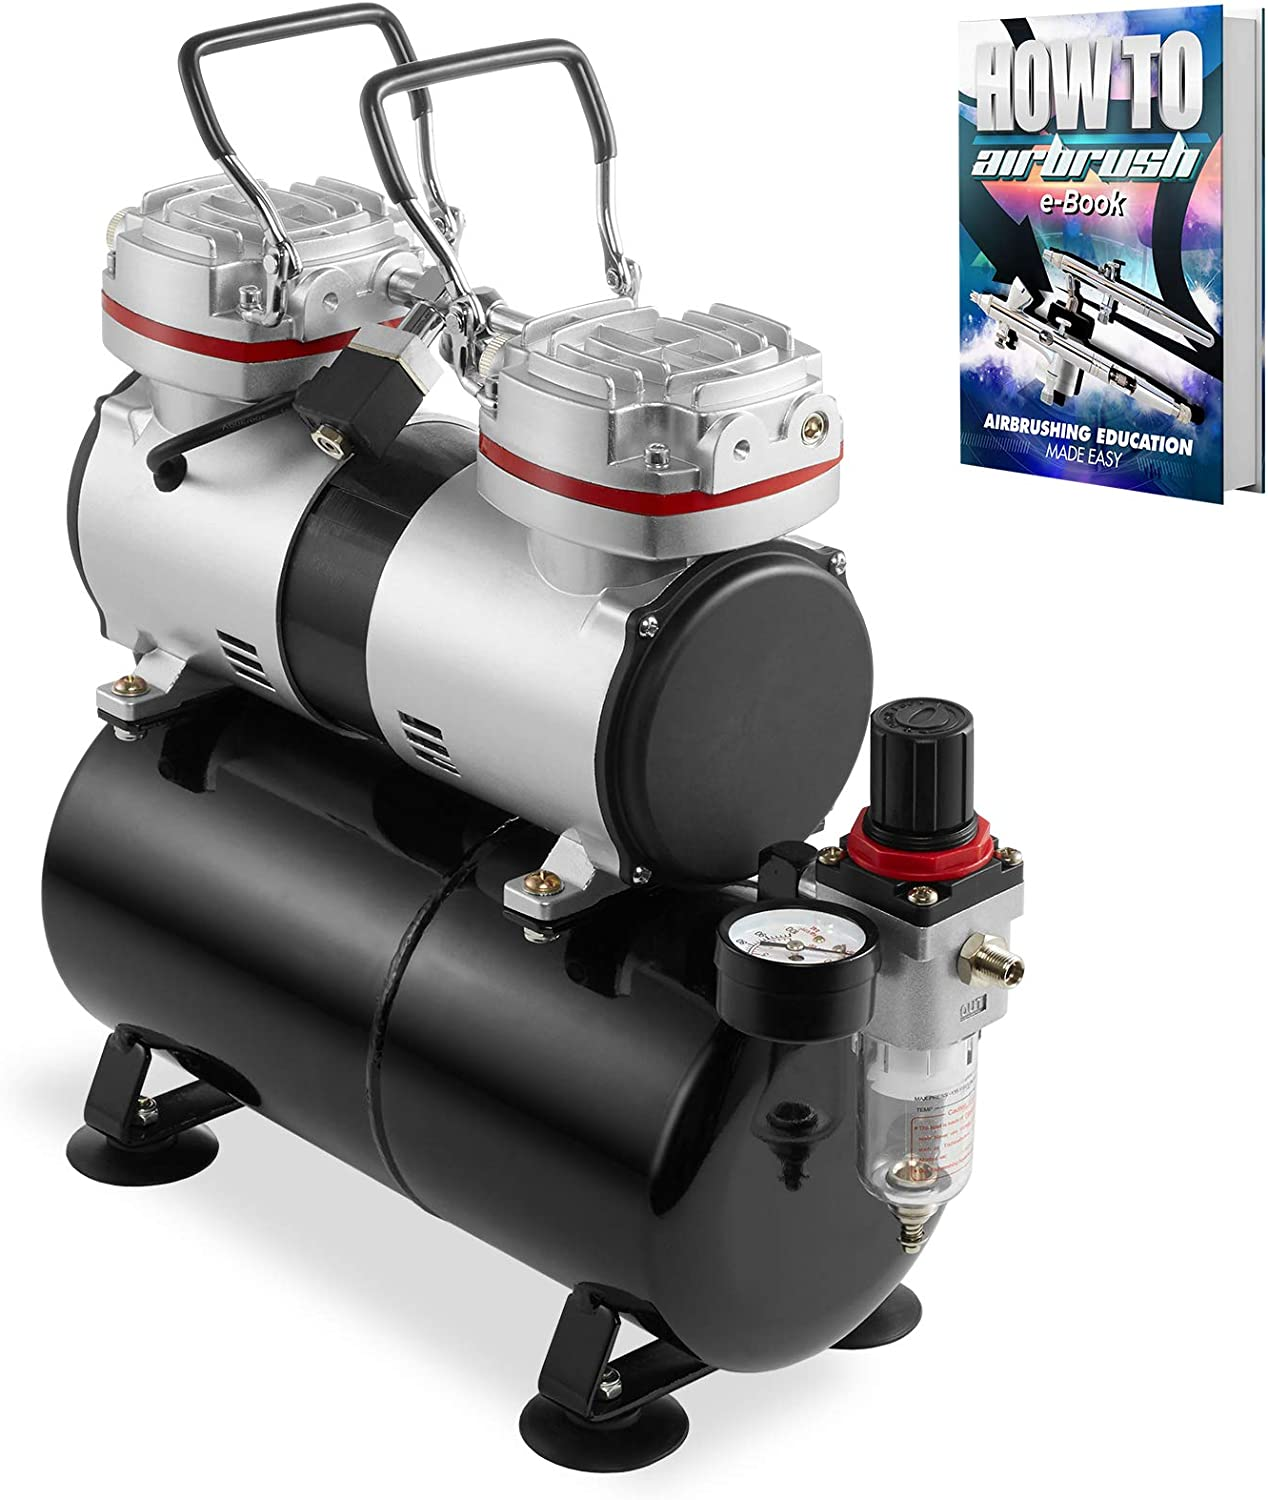 PointZero 1/3 HP Double Piston Airbrush Compressor with Air Tank, Regulator, Gauge and Water Trap - Quiet Professional Pump